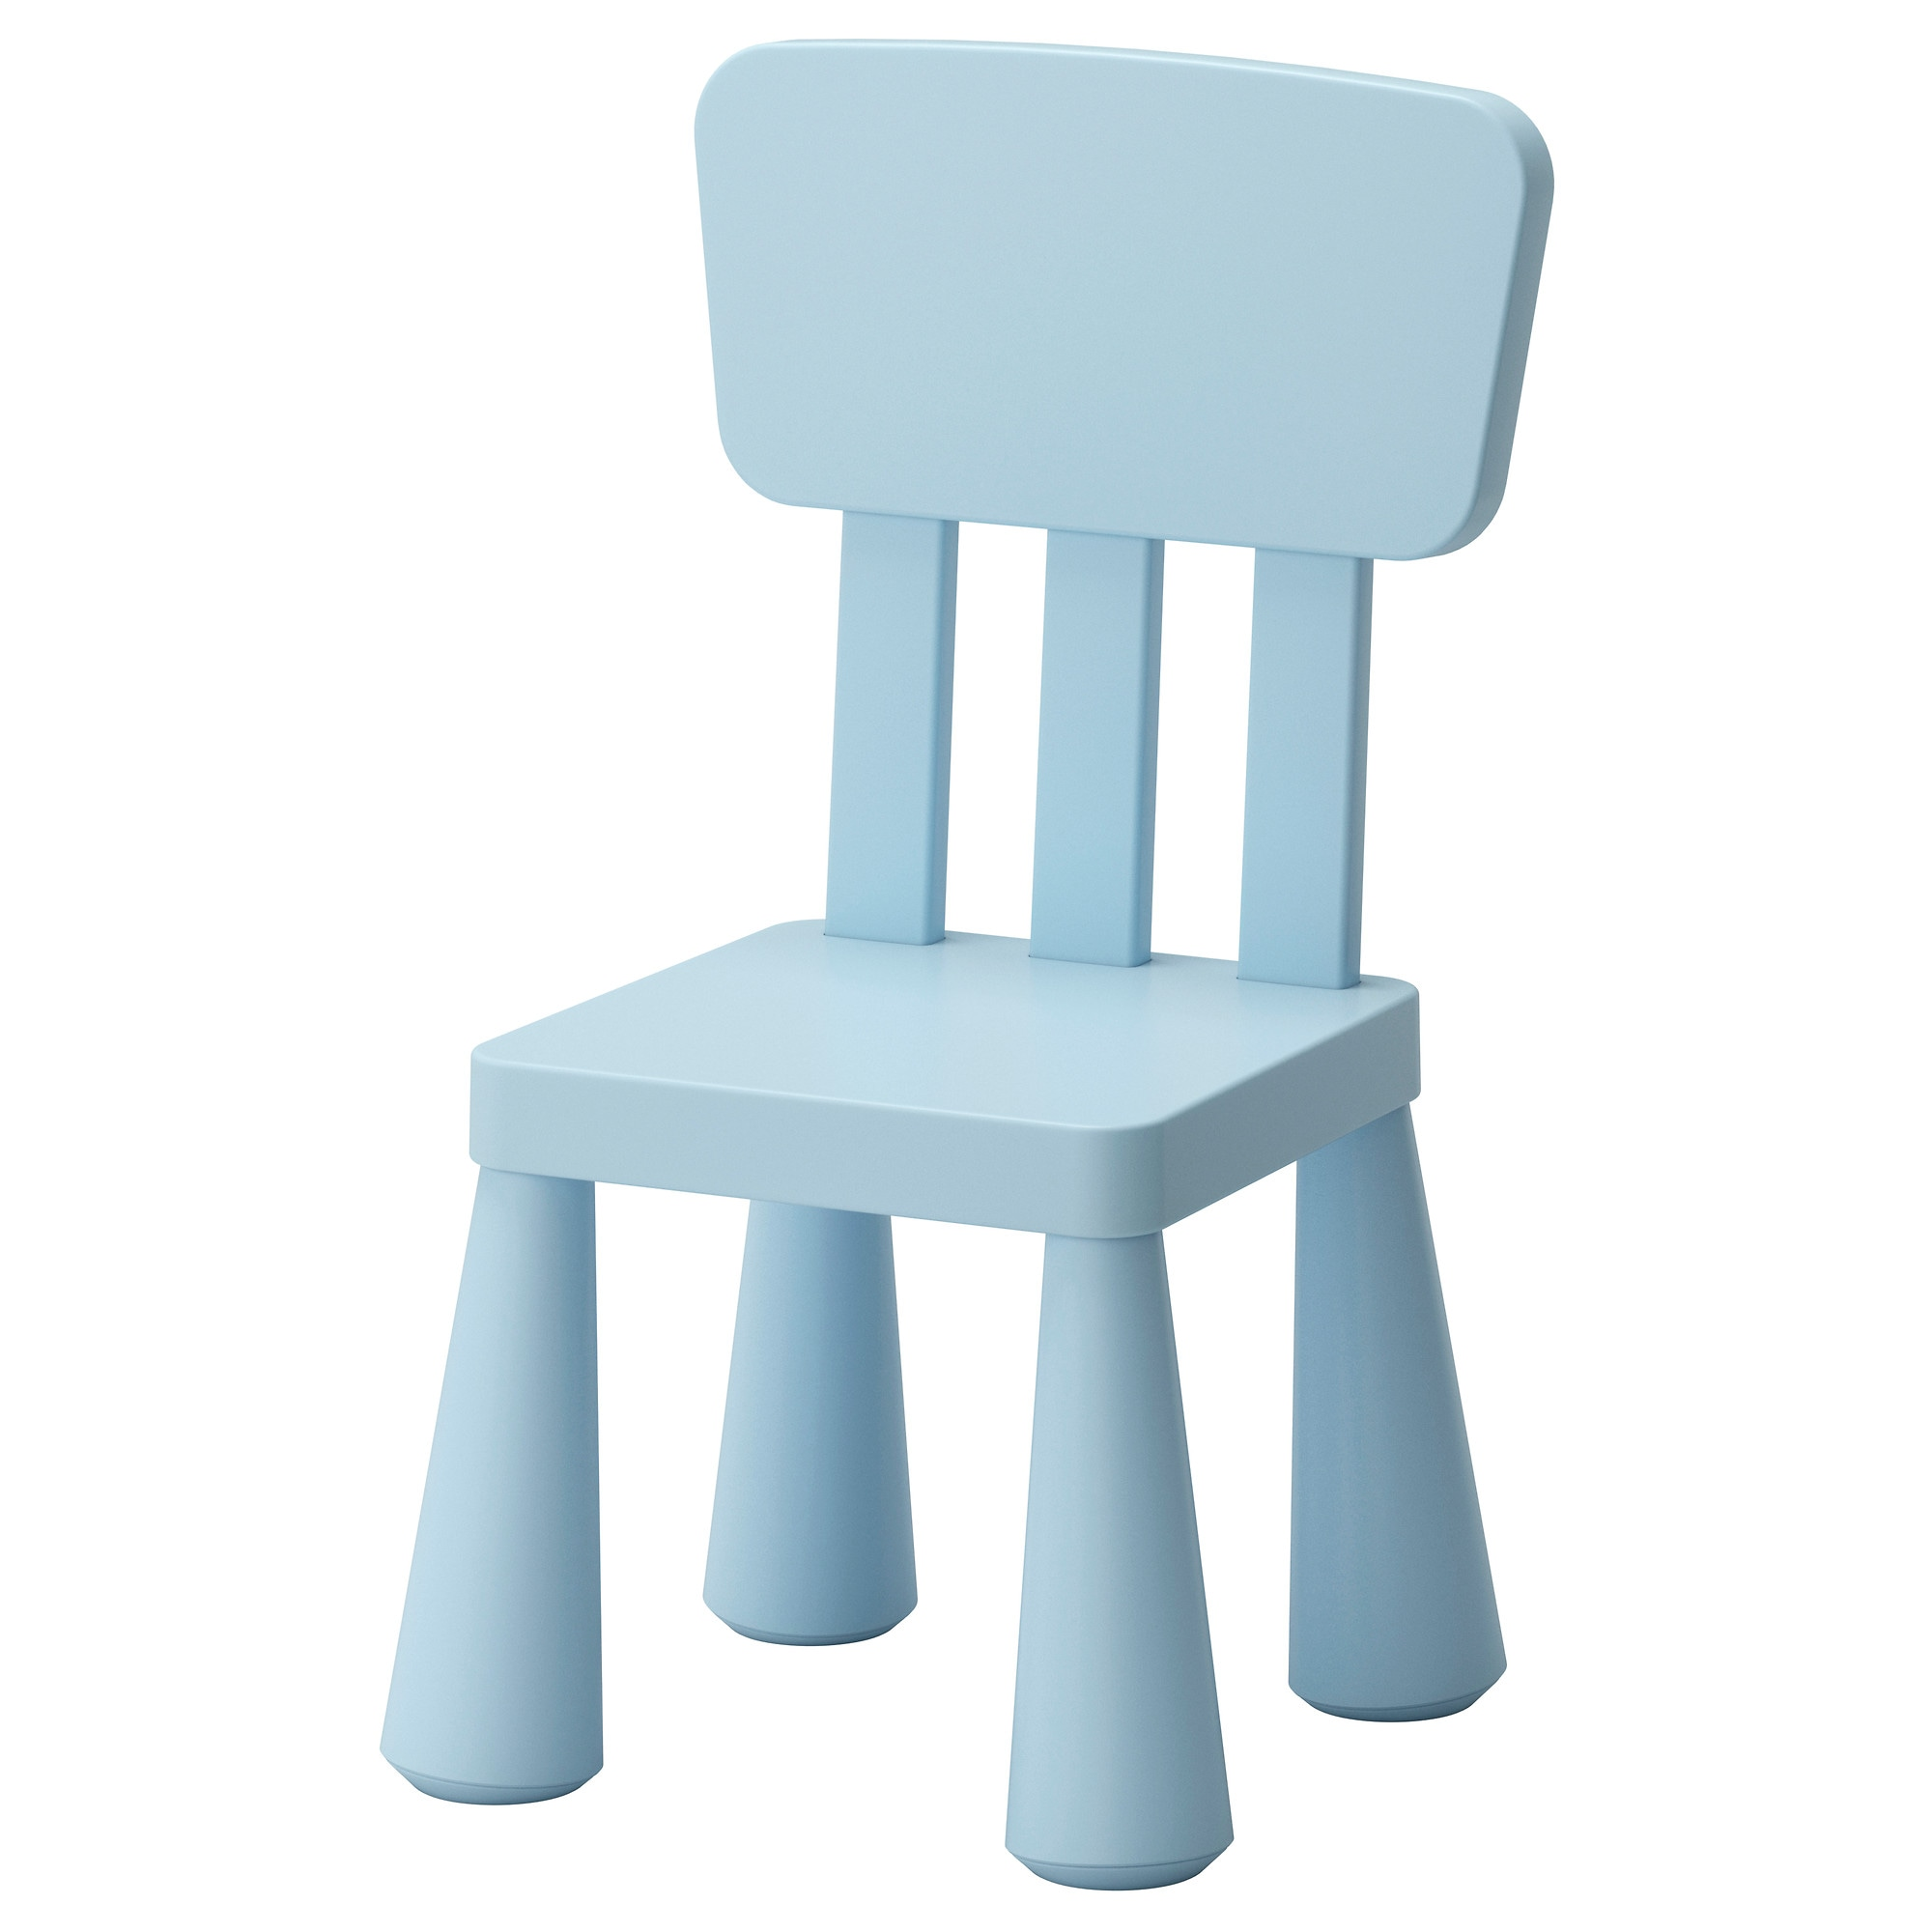 Ikea kids table and chairs - Mammut Children S Chair Indoor Outdoor Light Blue Light Blue Width 15 3